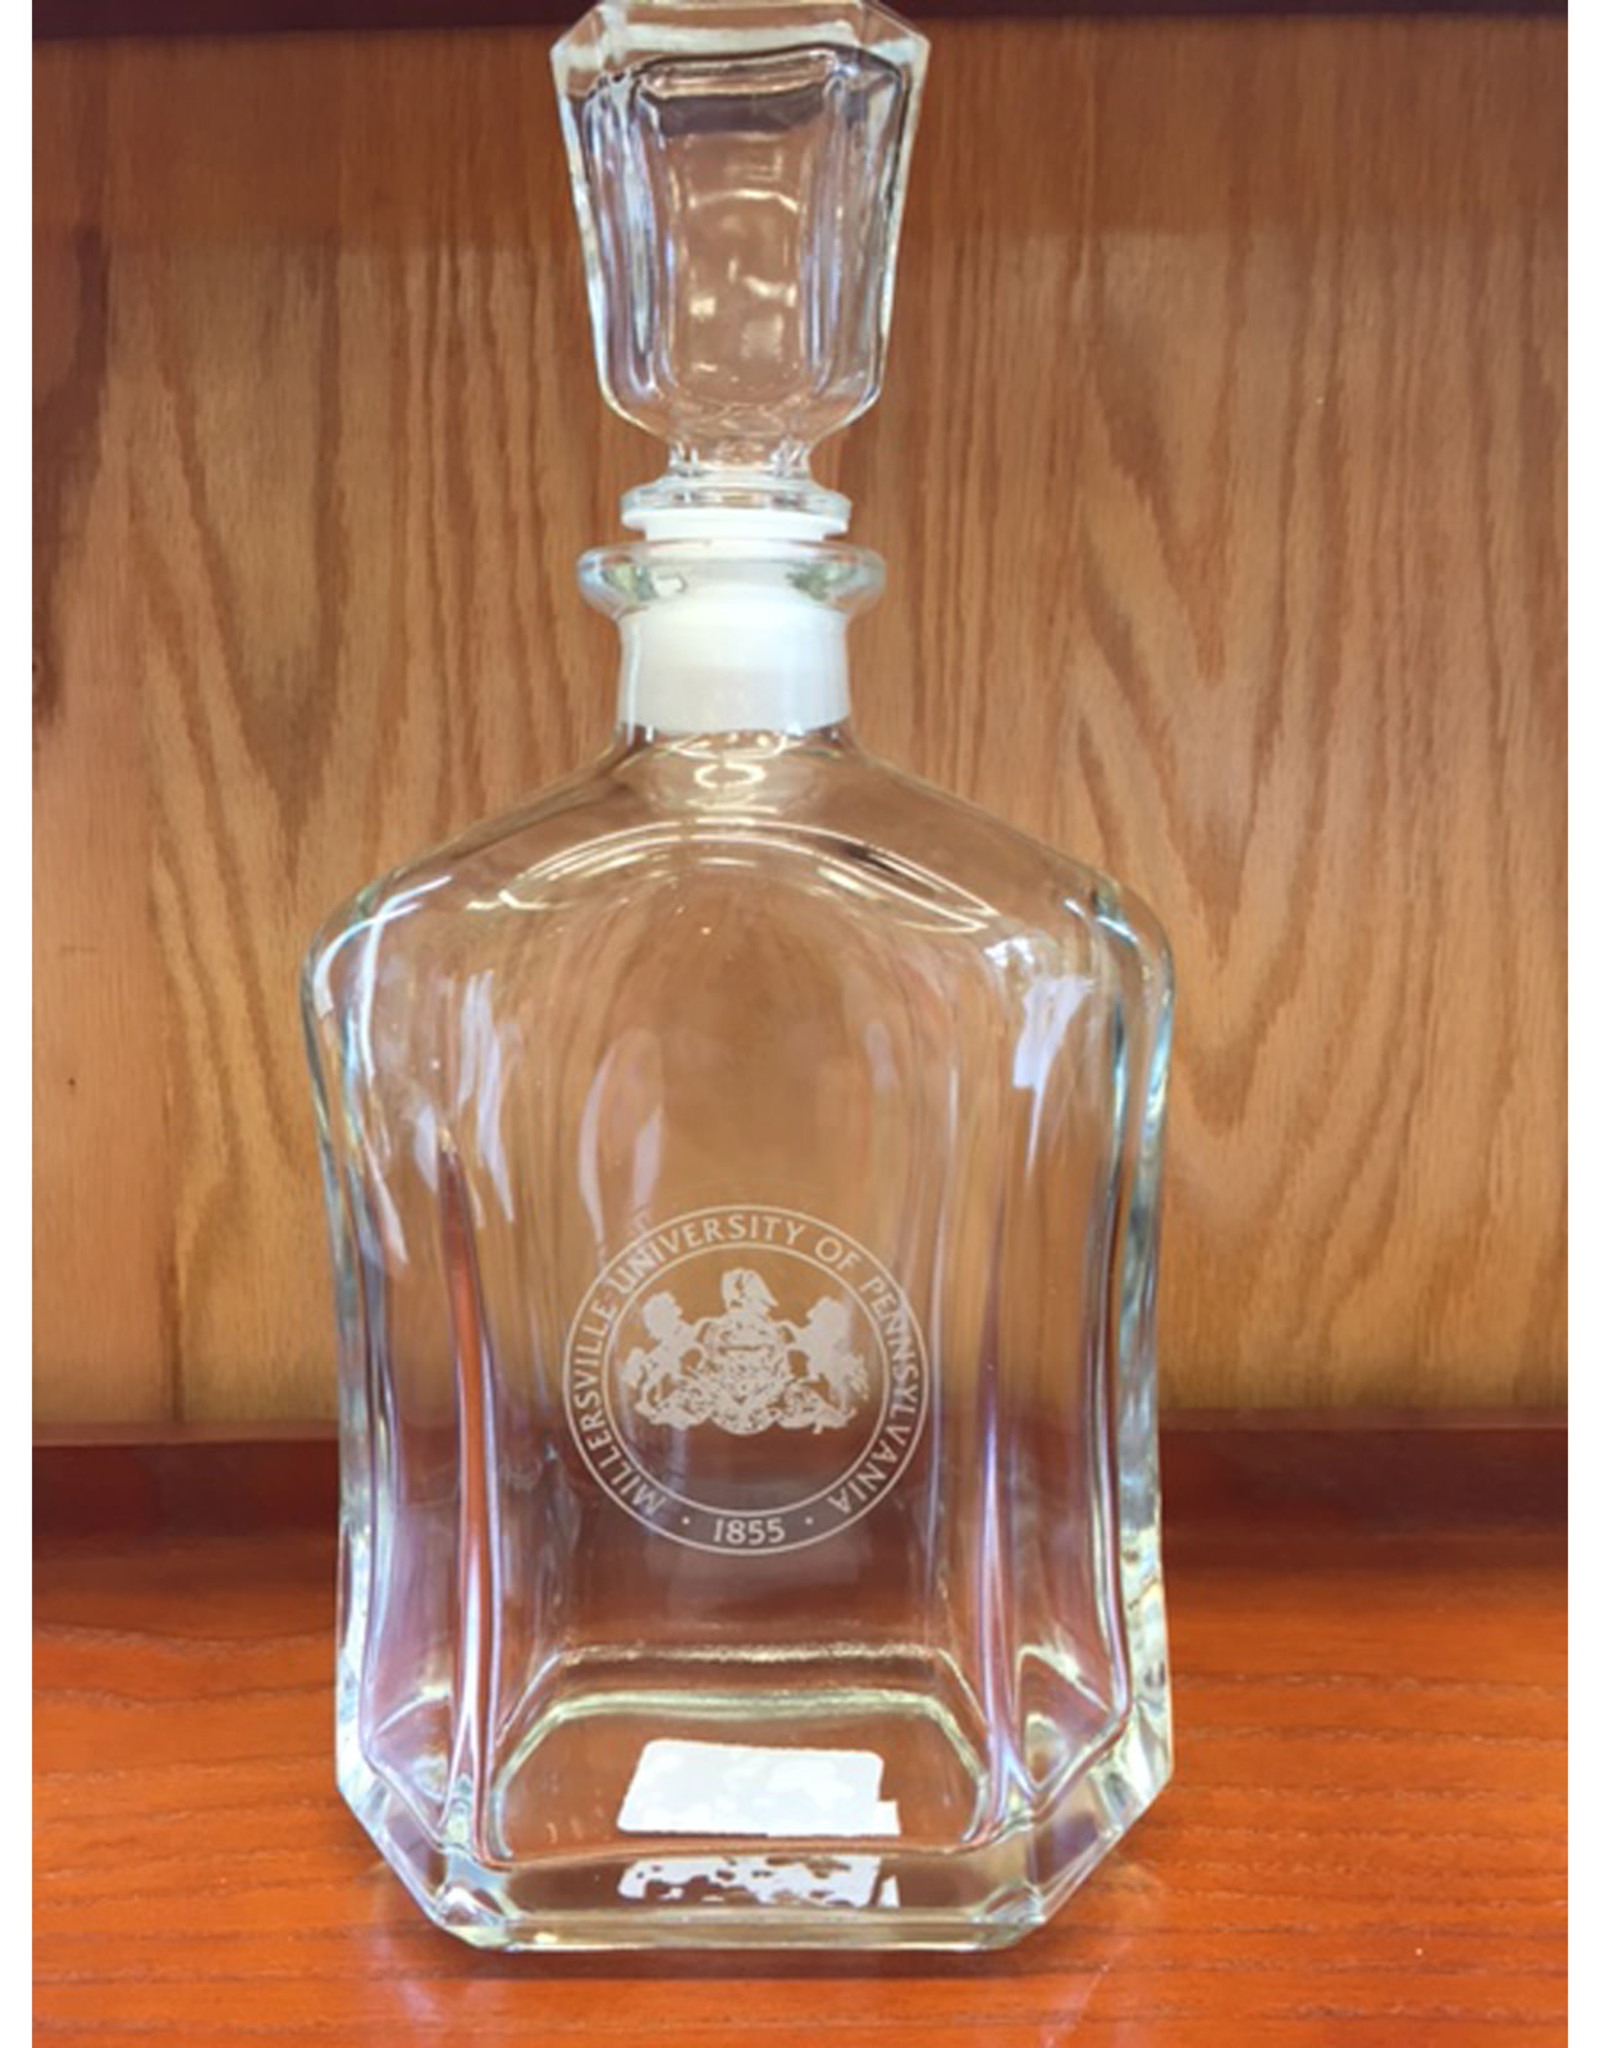 MU Seal Whiskey Decanter - 23.75oz